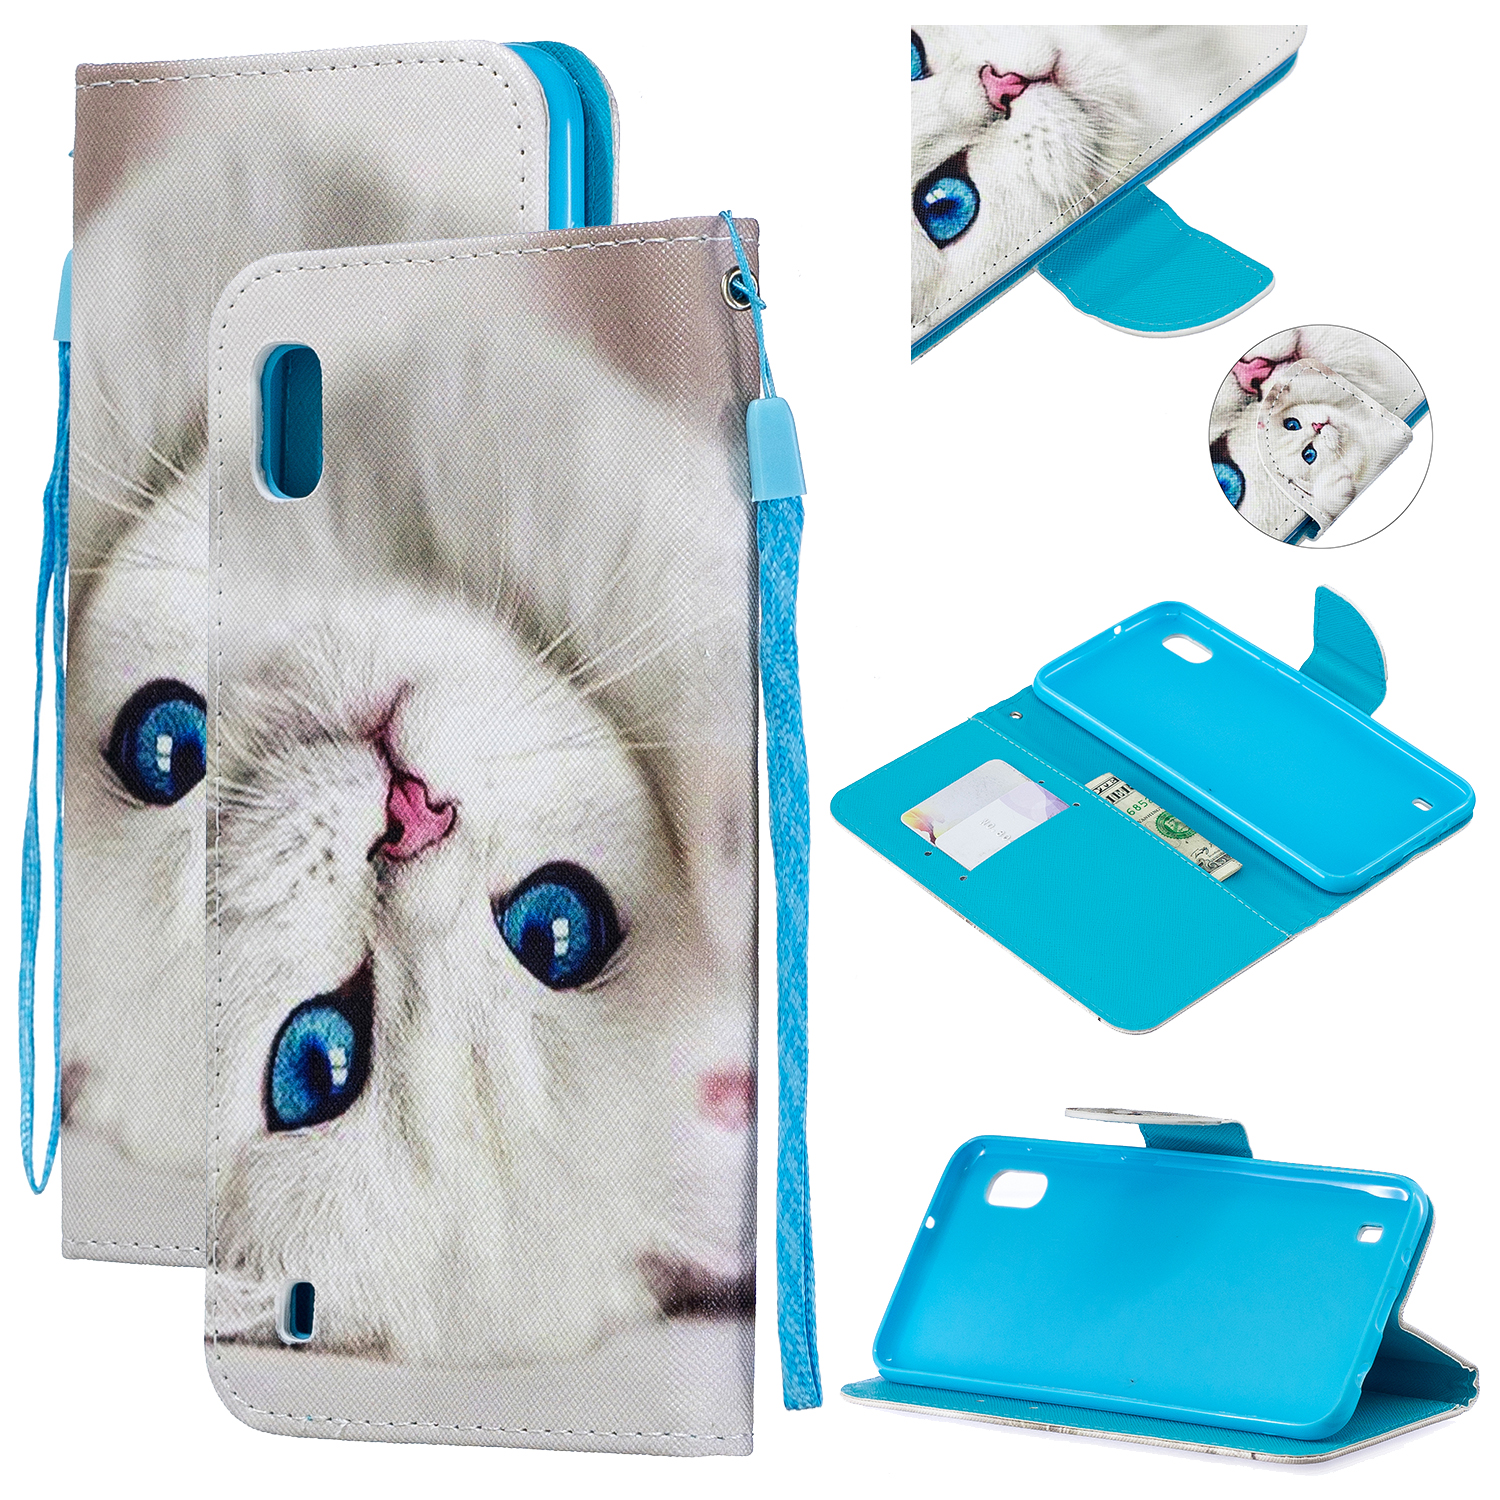 For Samsung A10/A20/A30 Smartphone Case PU Leather Wallet Design Cellphone Cover with Card Holder Stand Available Blue eyes cat